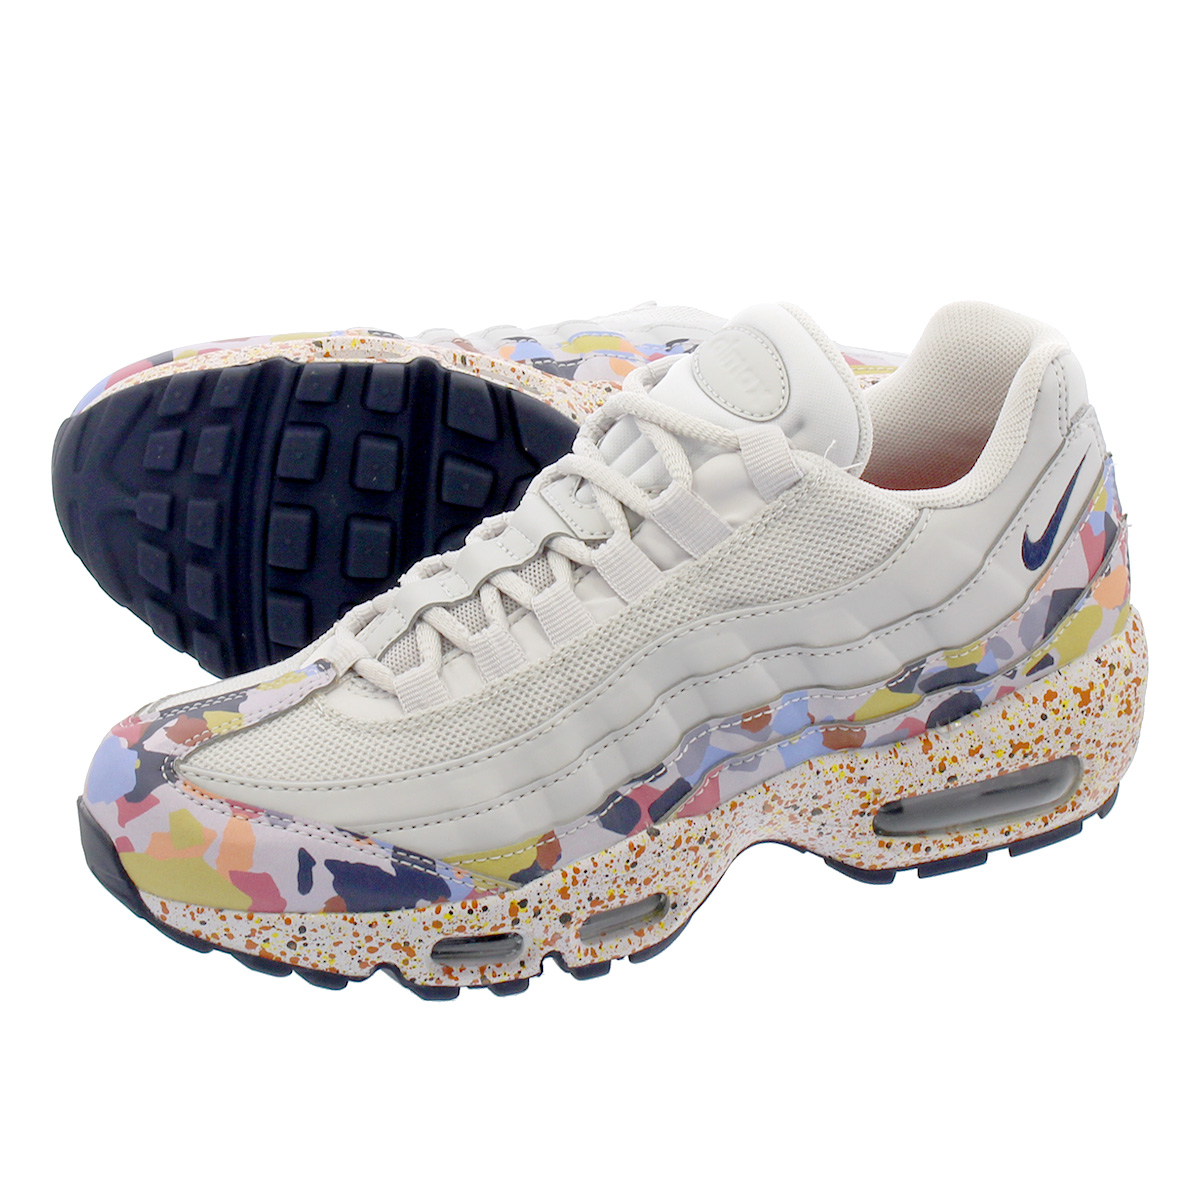 cd260c3f0c LOWTEX PLUS: NIKE WMNS AIR MAX 95 SE Nike women Air Max 95 premium SE VAST  GREY/MIDNIGHT NAVY/HABANERO RED 918,413-004 | Rakuten Global Market